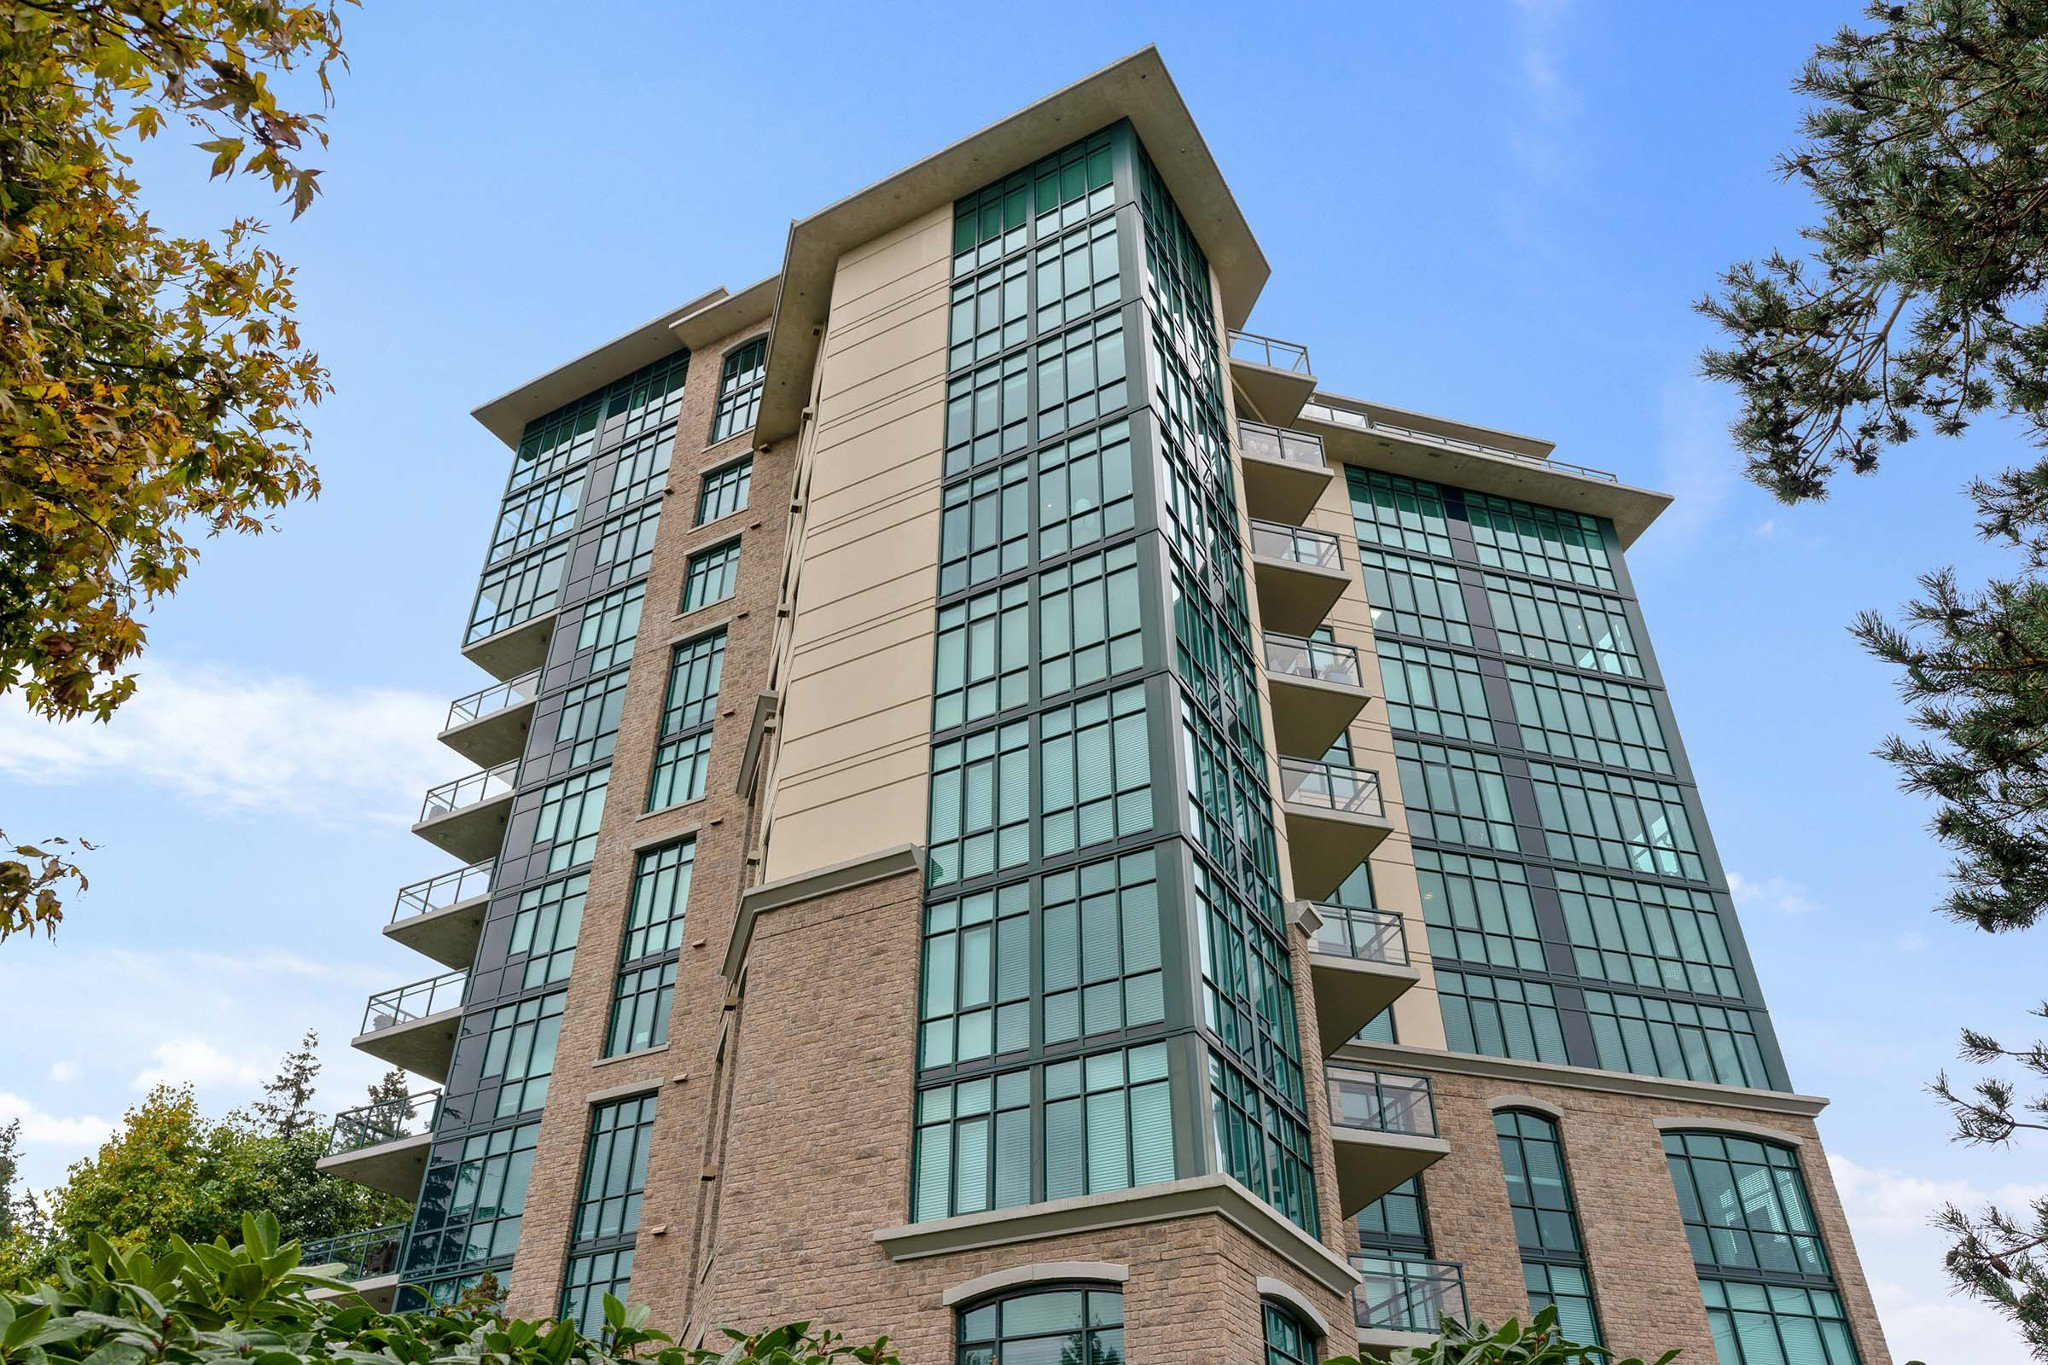 Main Photo: 902 14824 NORTH BLUFF Road: White Rock Condo for sale (South Surrey White Rock)  : MLS®# R2510554